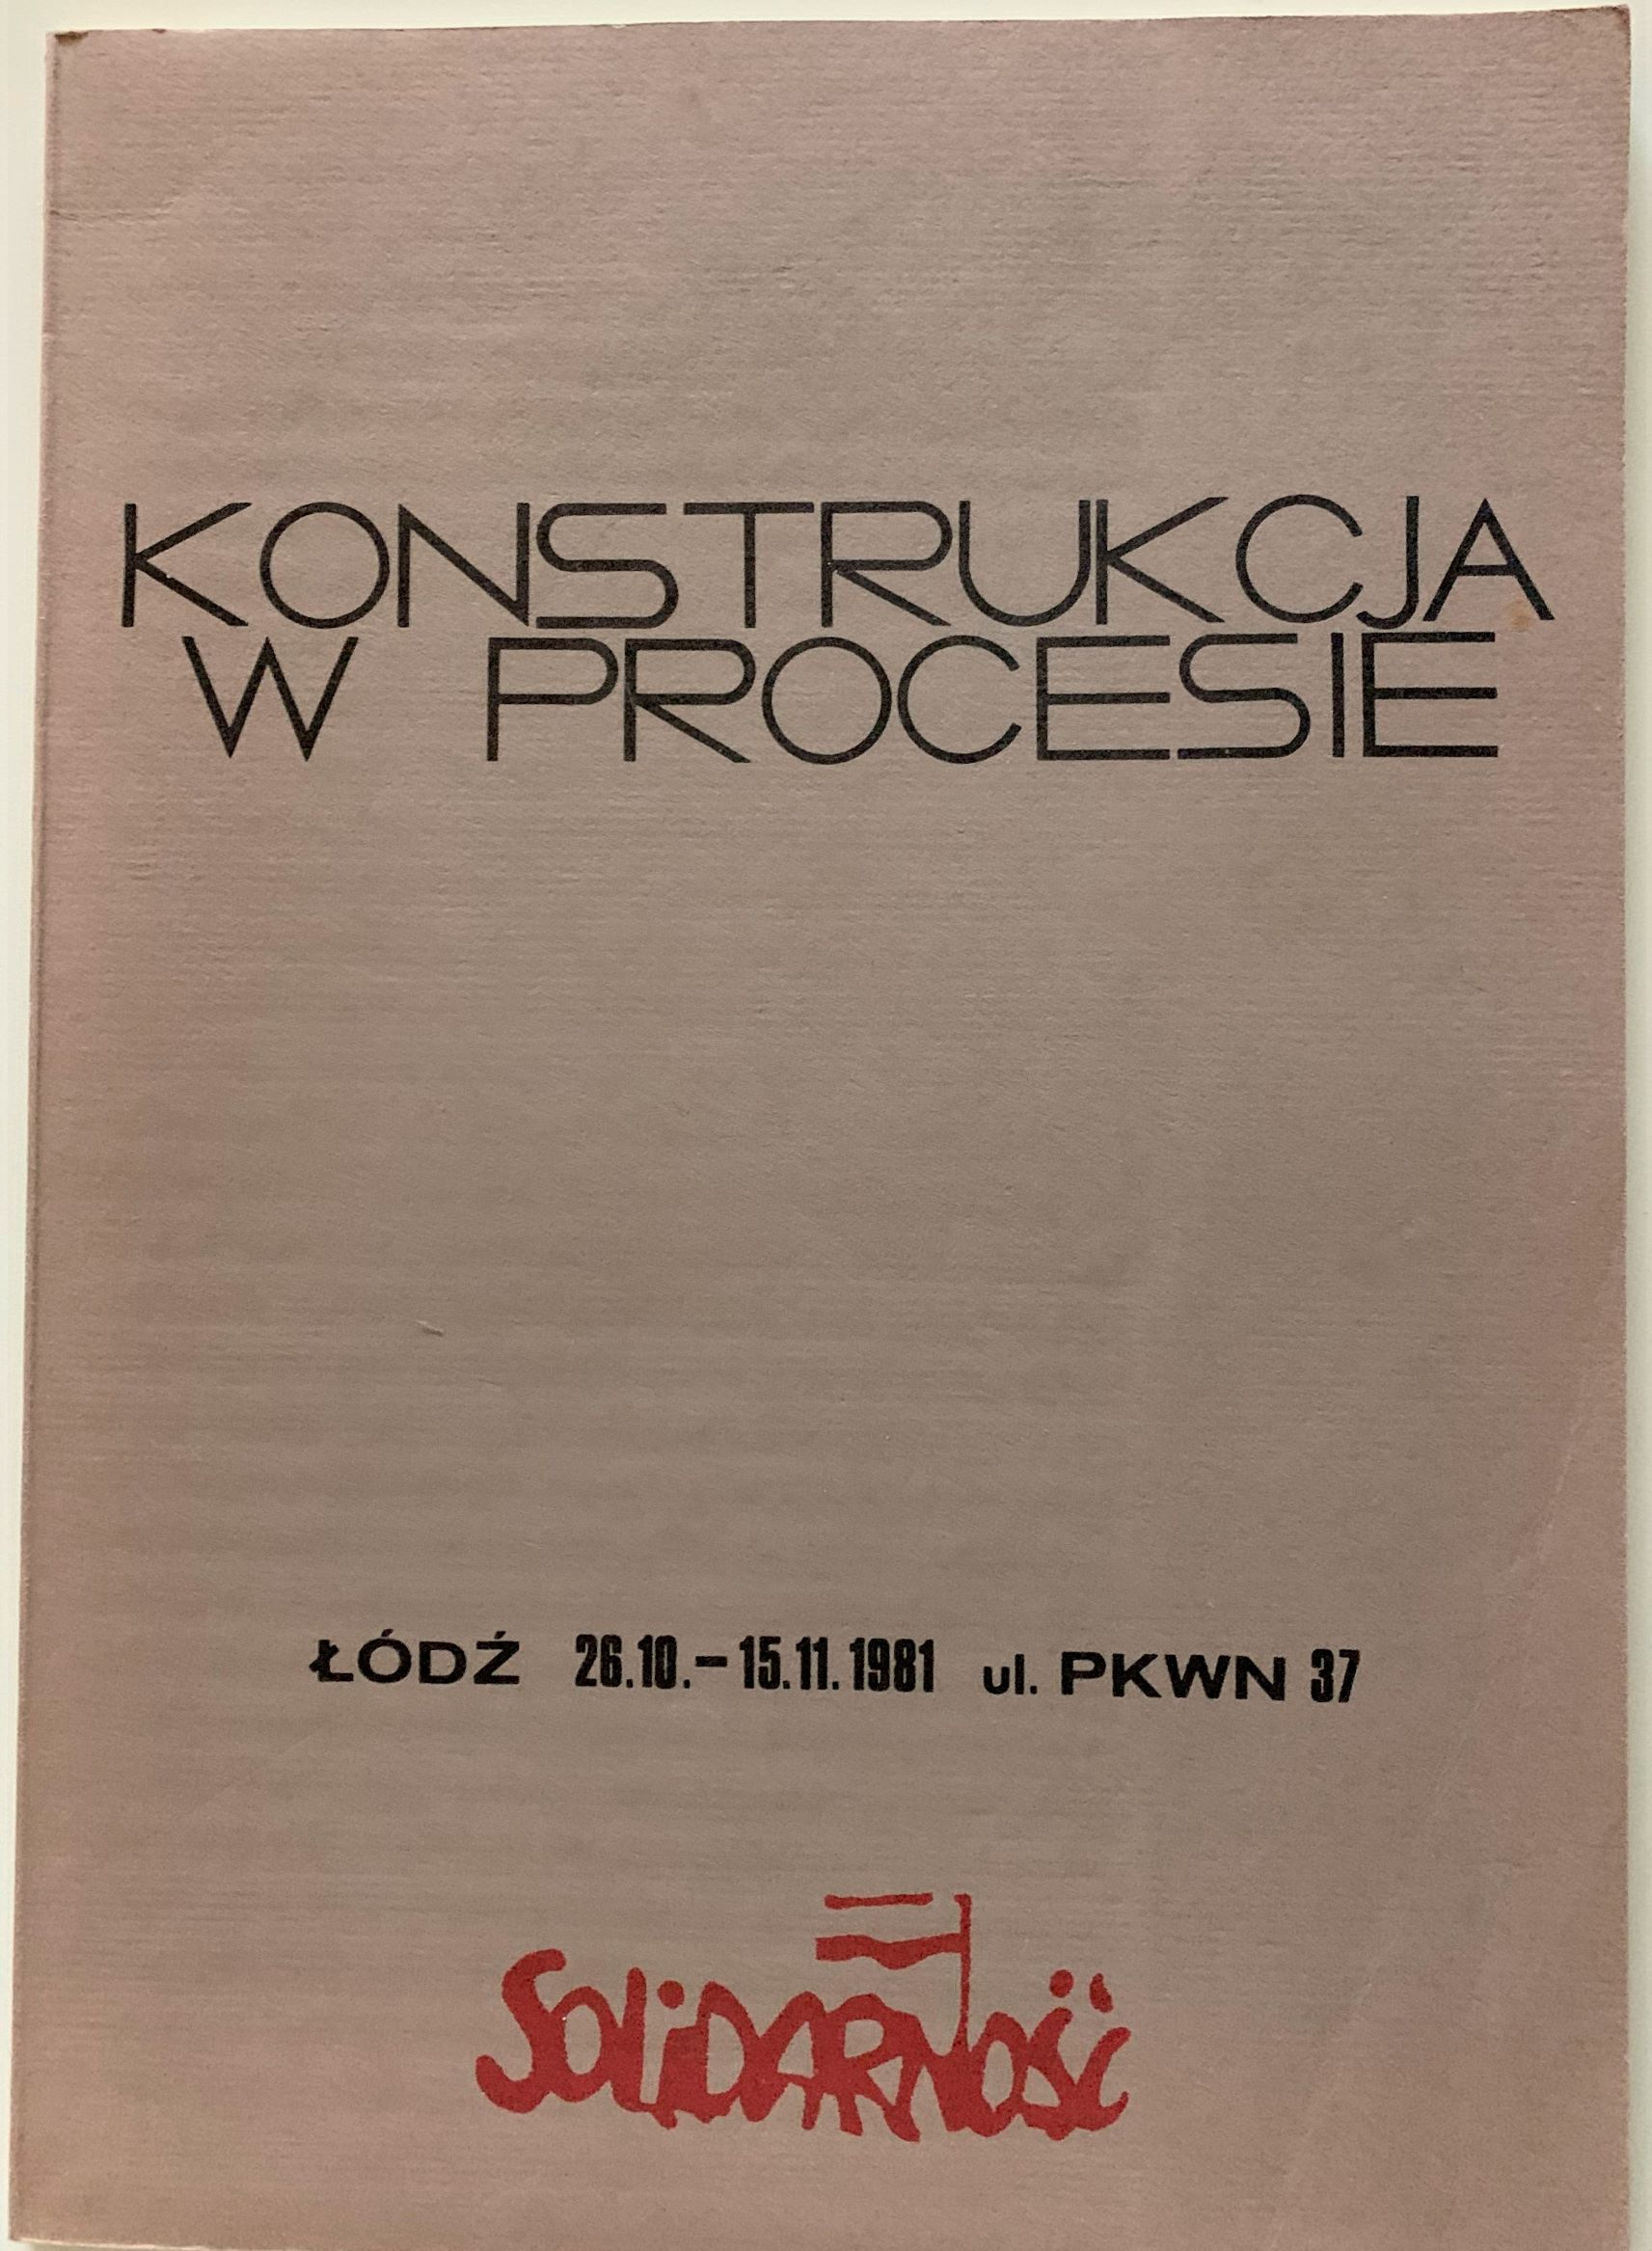 Image for Construction in Process, Oct. 26 - Nov. 15, 1981, 37 Pkwn Street, Lodz, Poland.